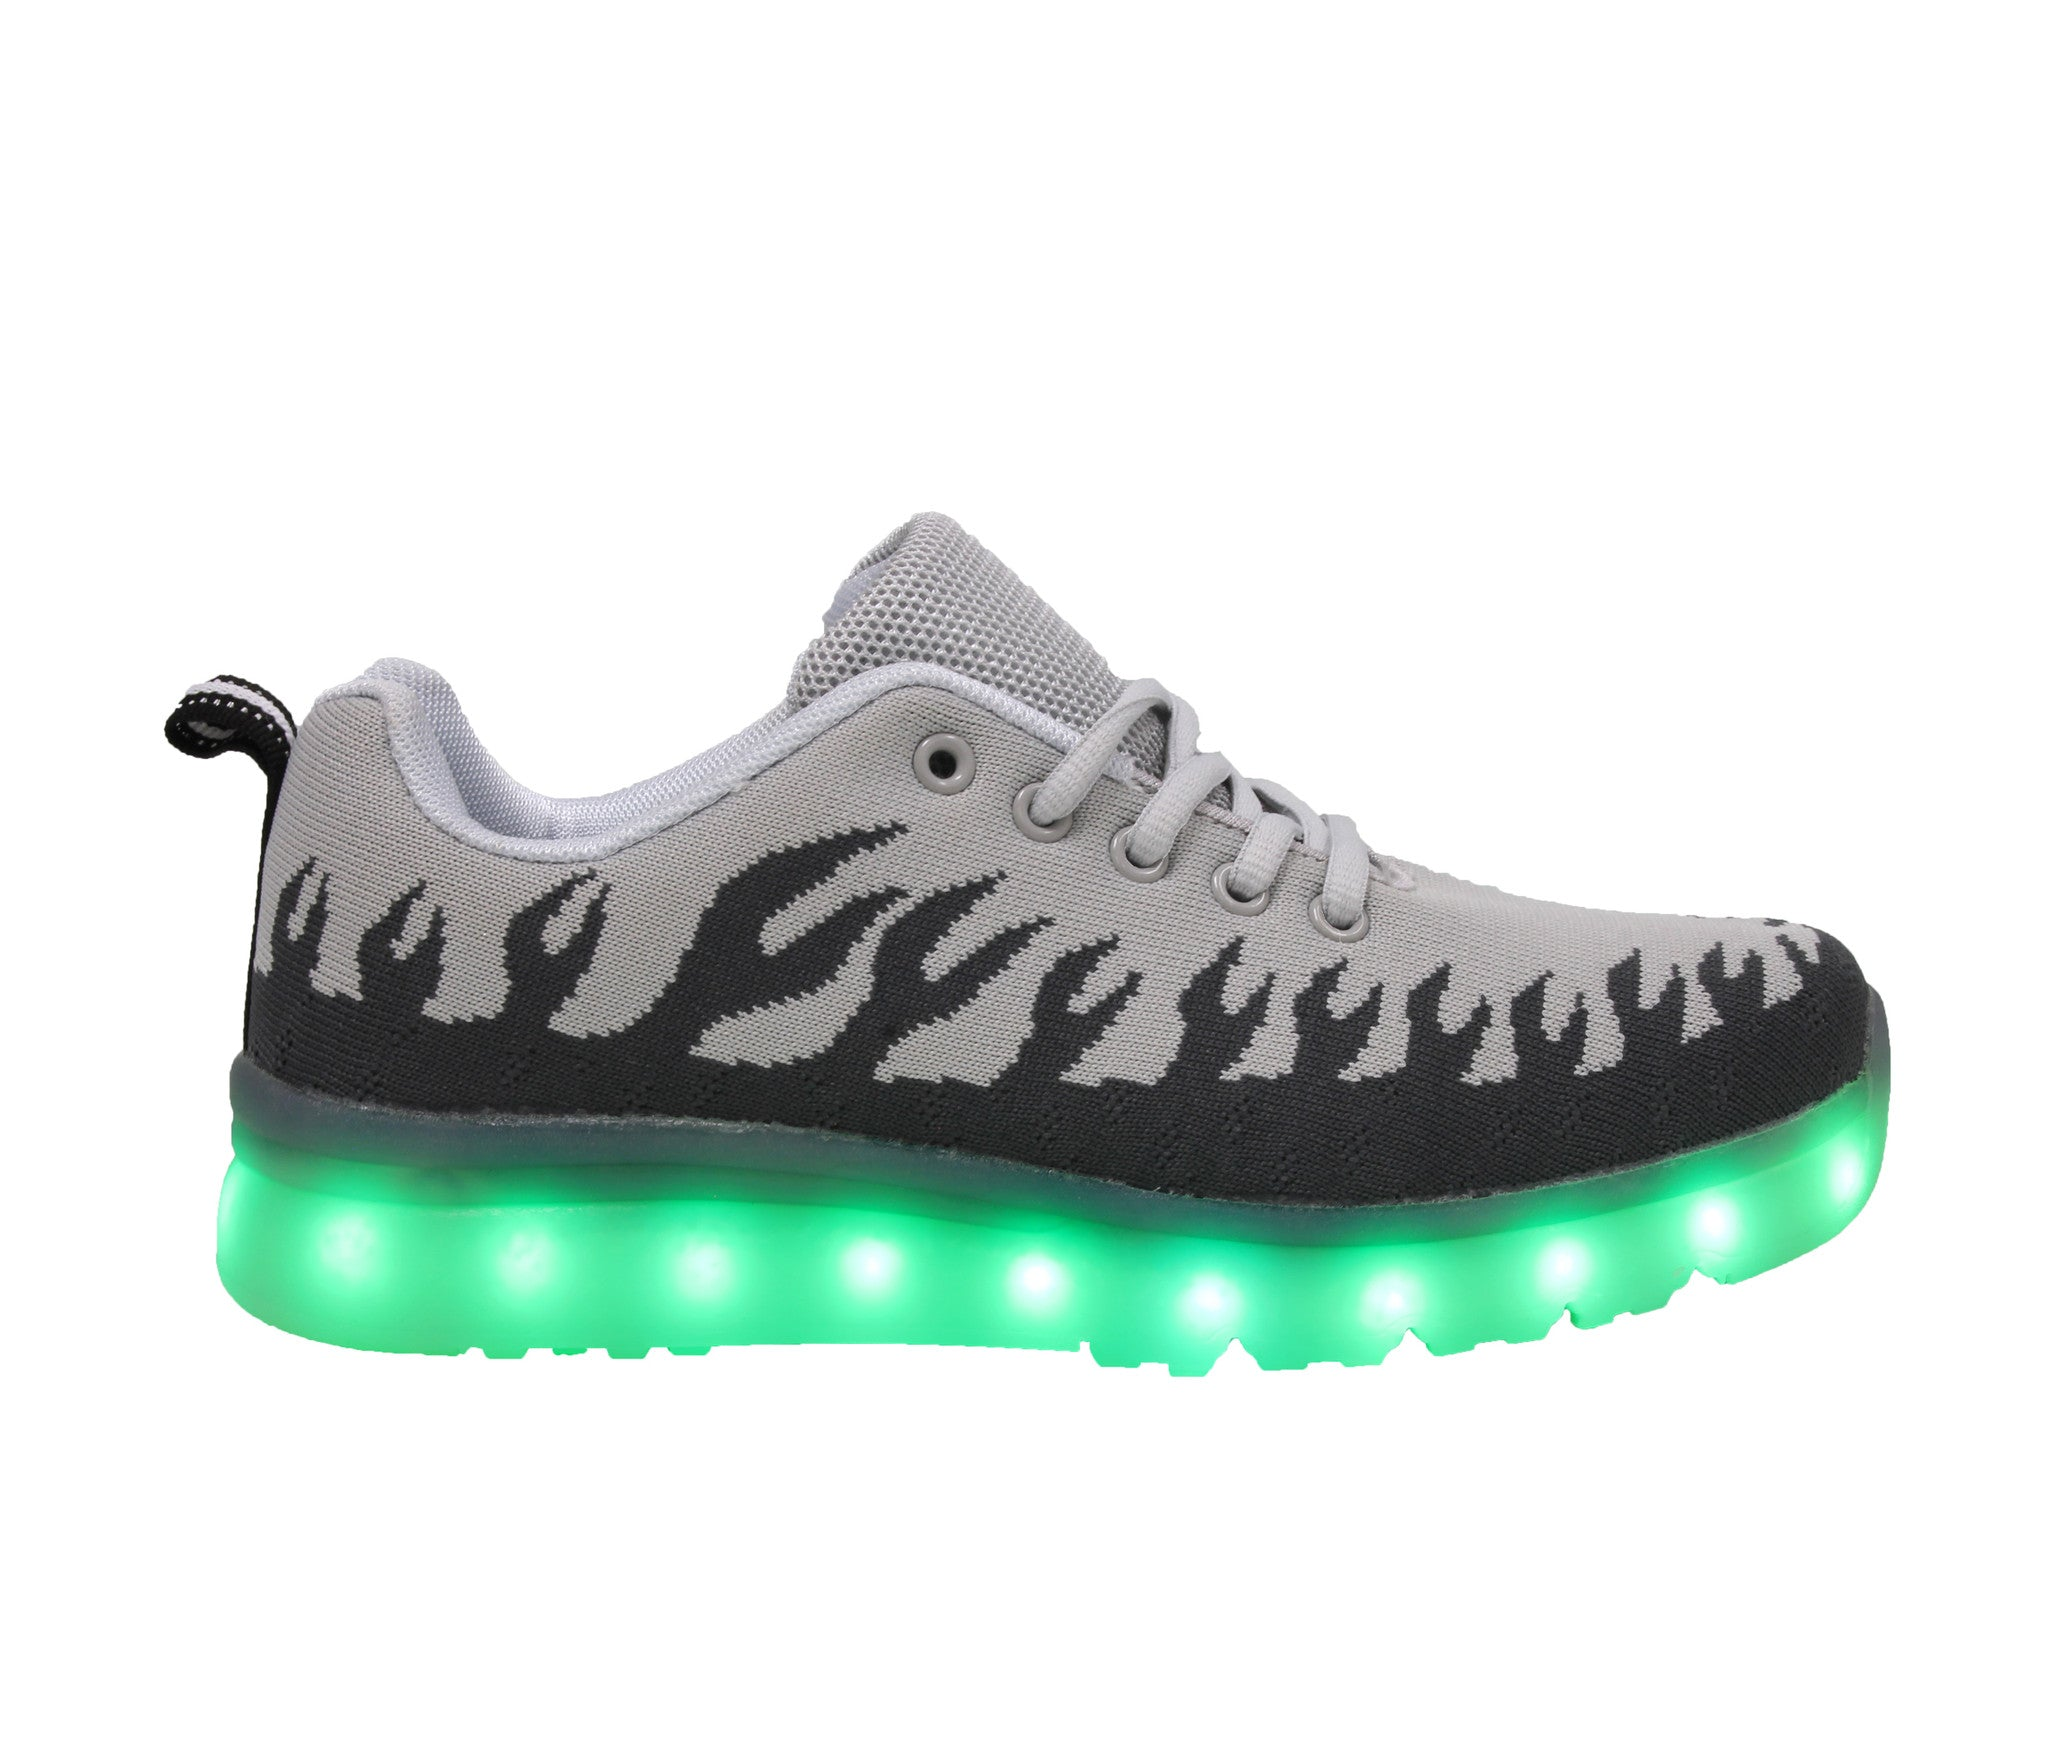 Inferno Sport (Grey) - LED SHOE SOURCE,  Shoes - Fashion LED Shoes USB Charging light up Sneakers Adults Unisex Men women kids Casual Shoes High Quality